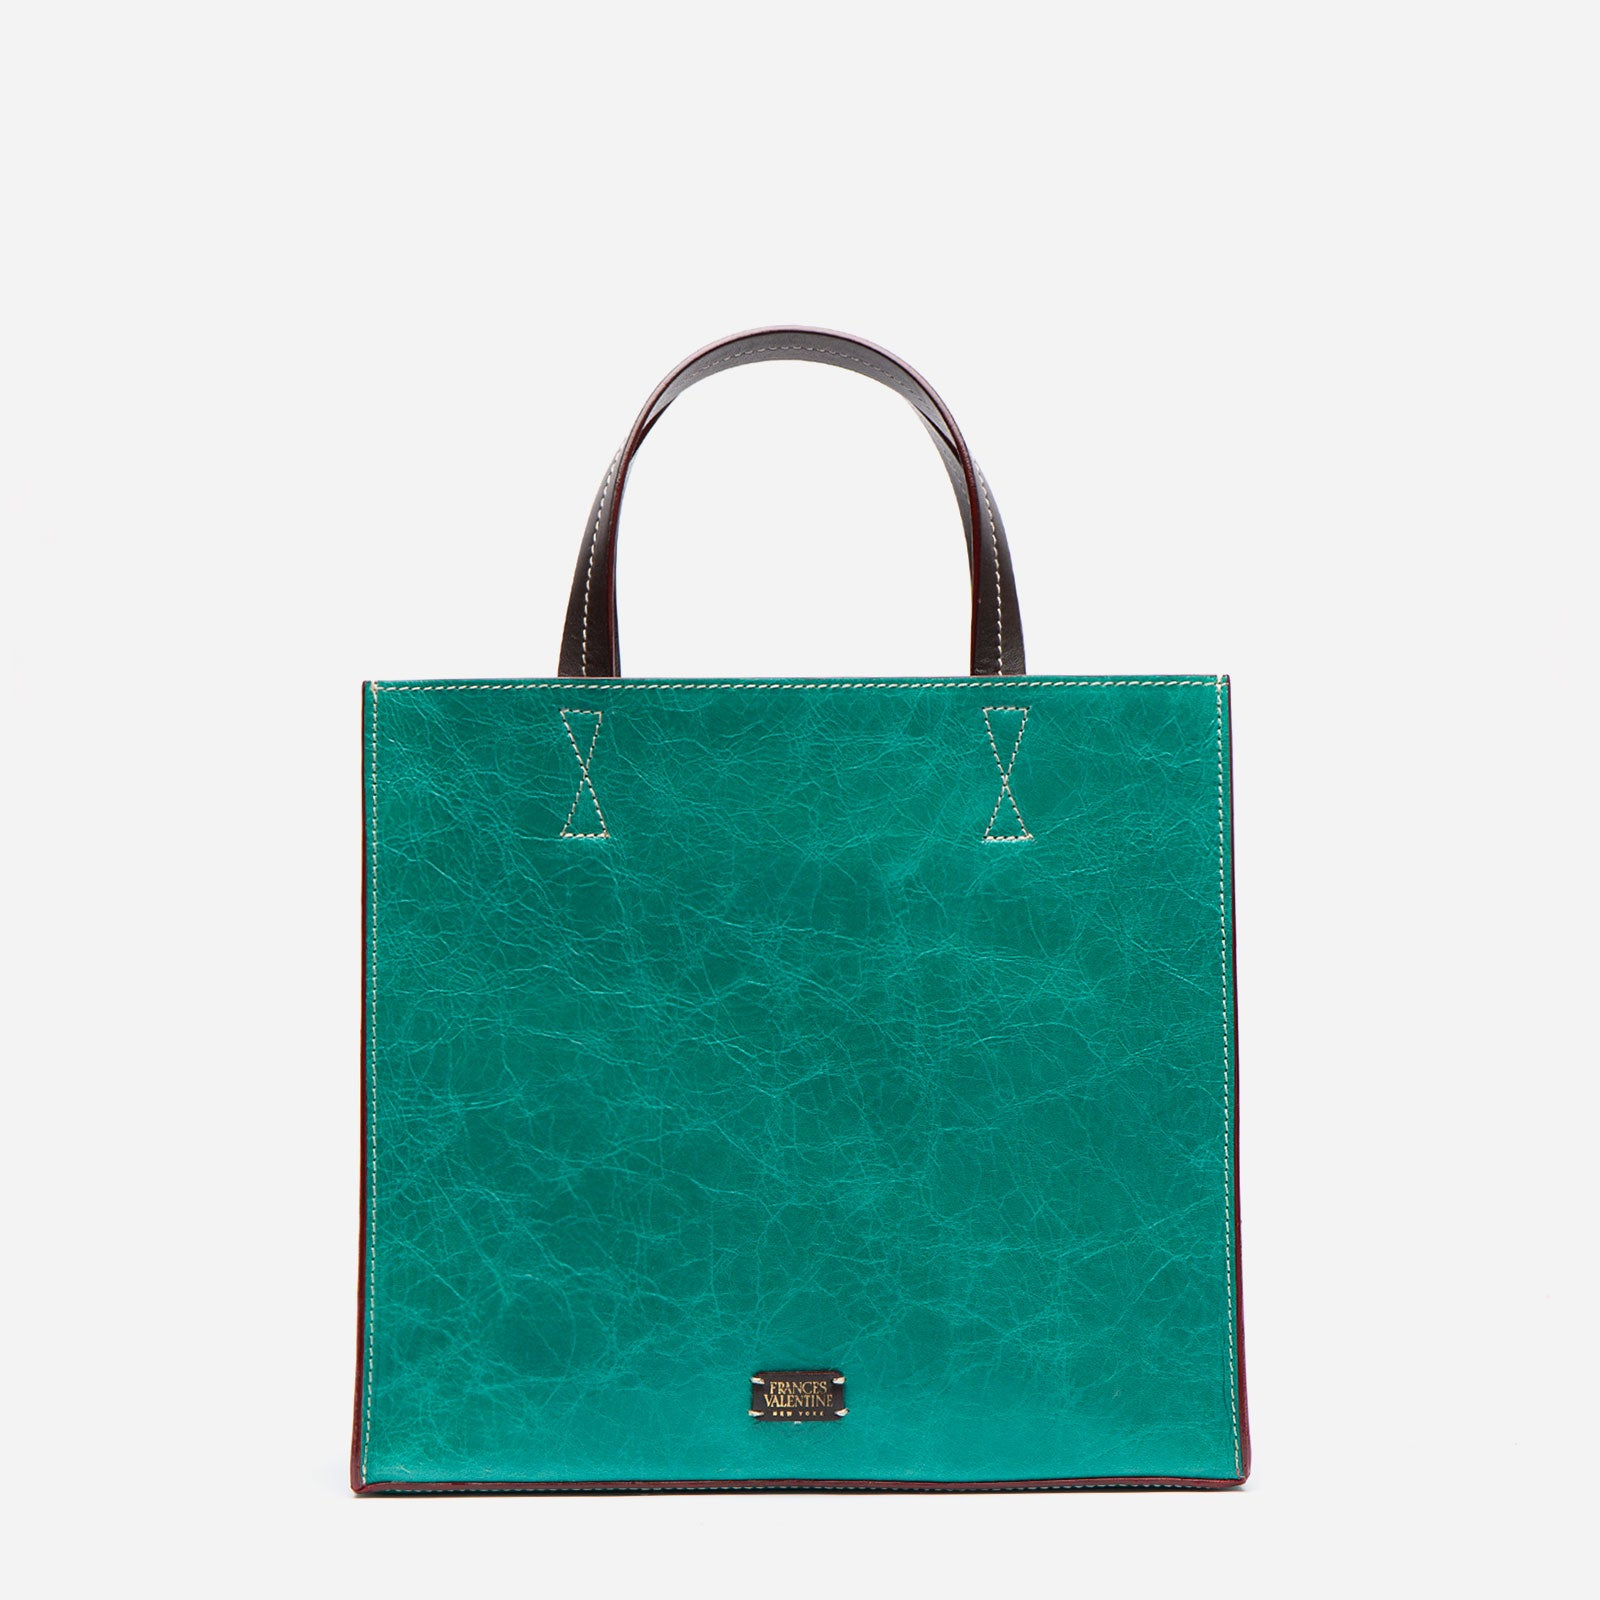 Margo Tote Naplak Leather Green Oyster